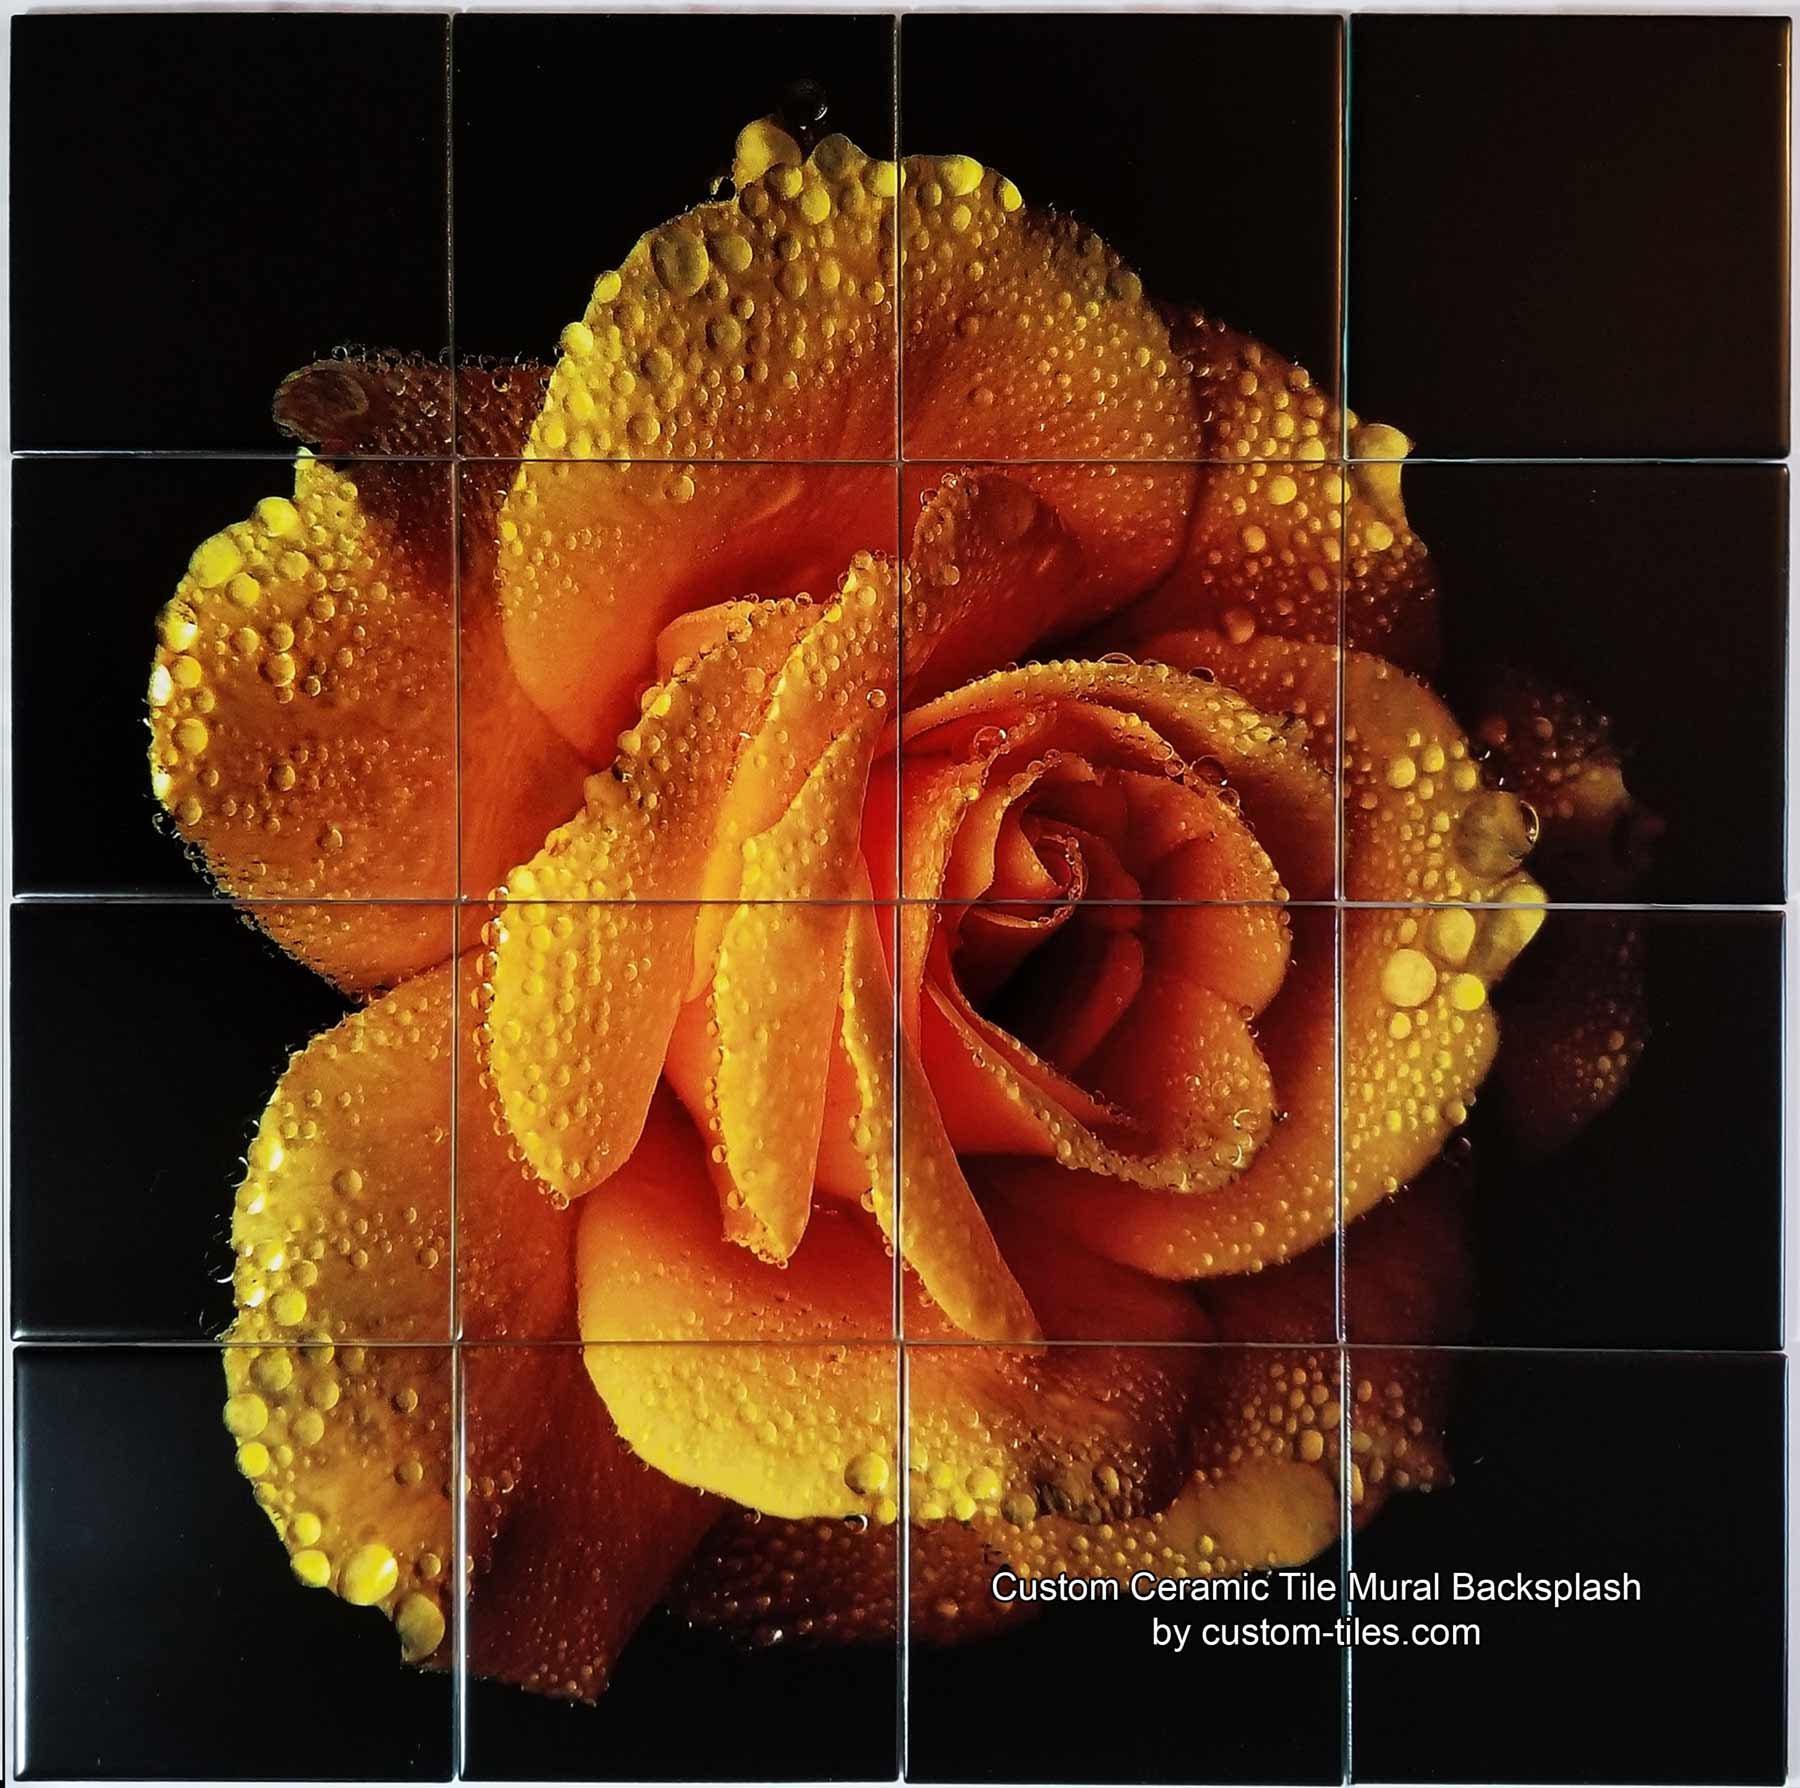 Yellow Rose Custom Ceramic Tile Mural Backsplash